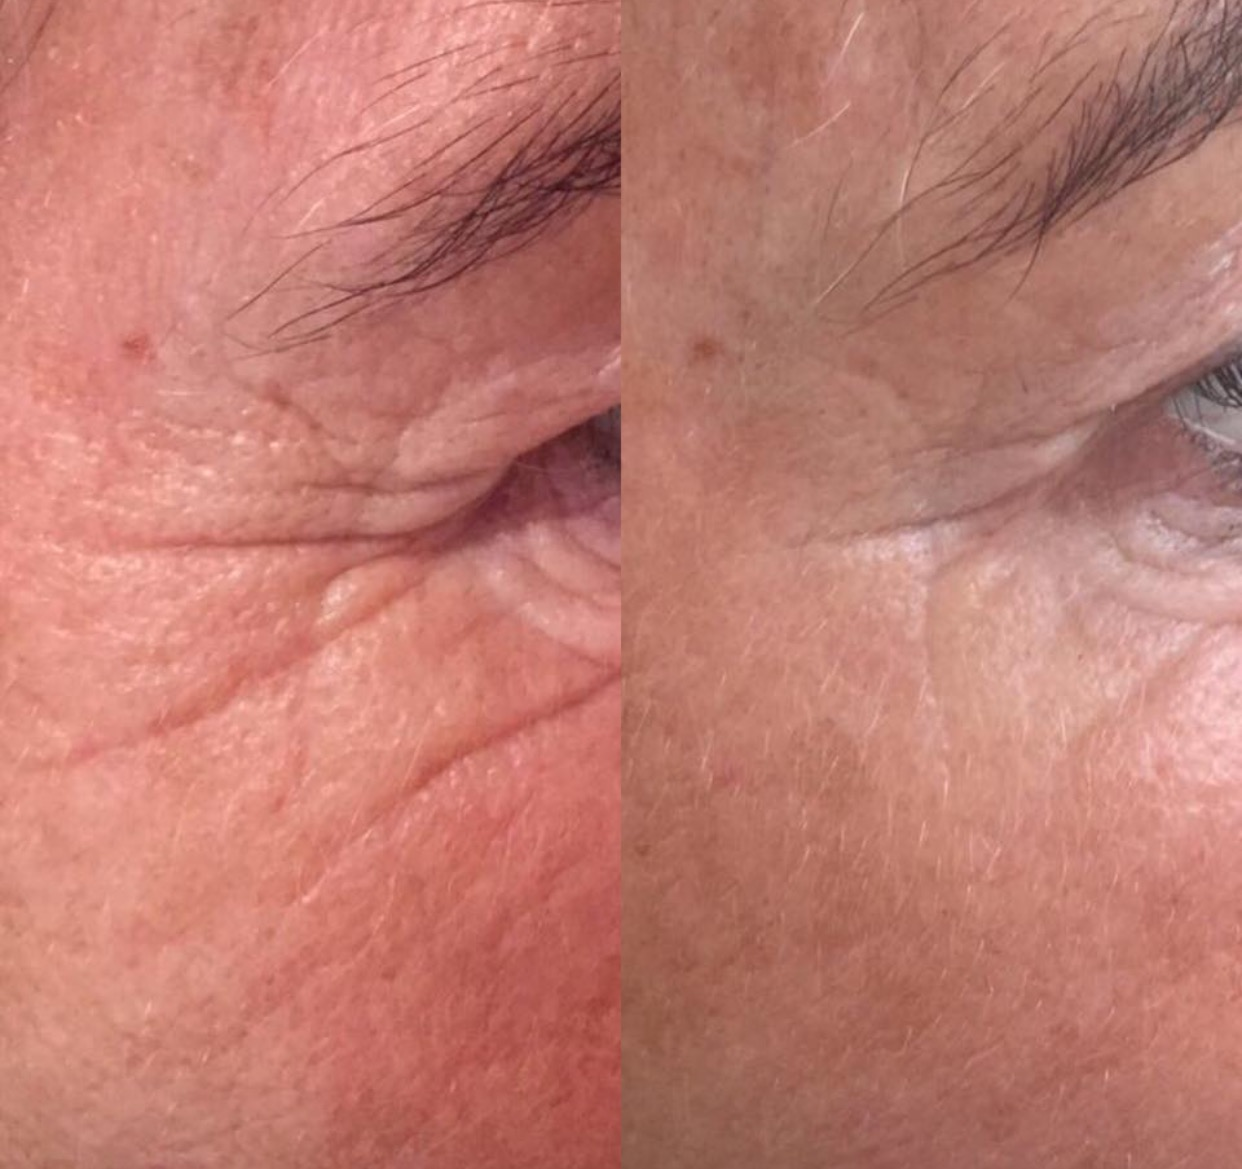 Anti-wrinkle injections to treat 'crows feet' around the eyes